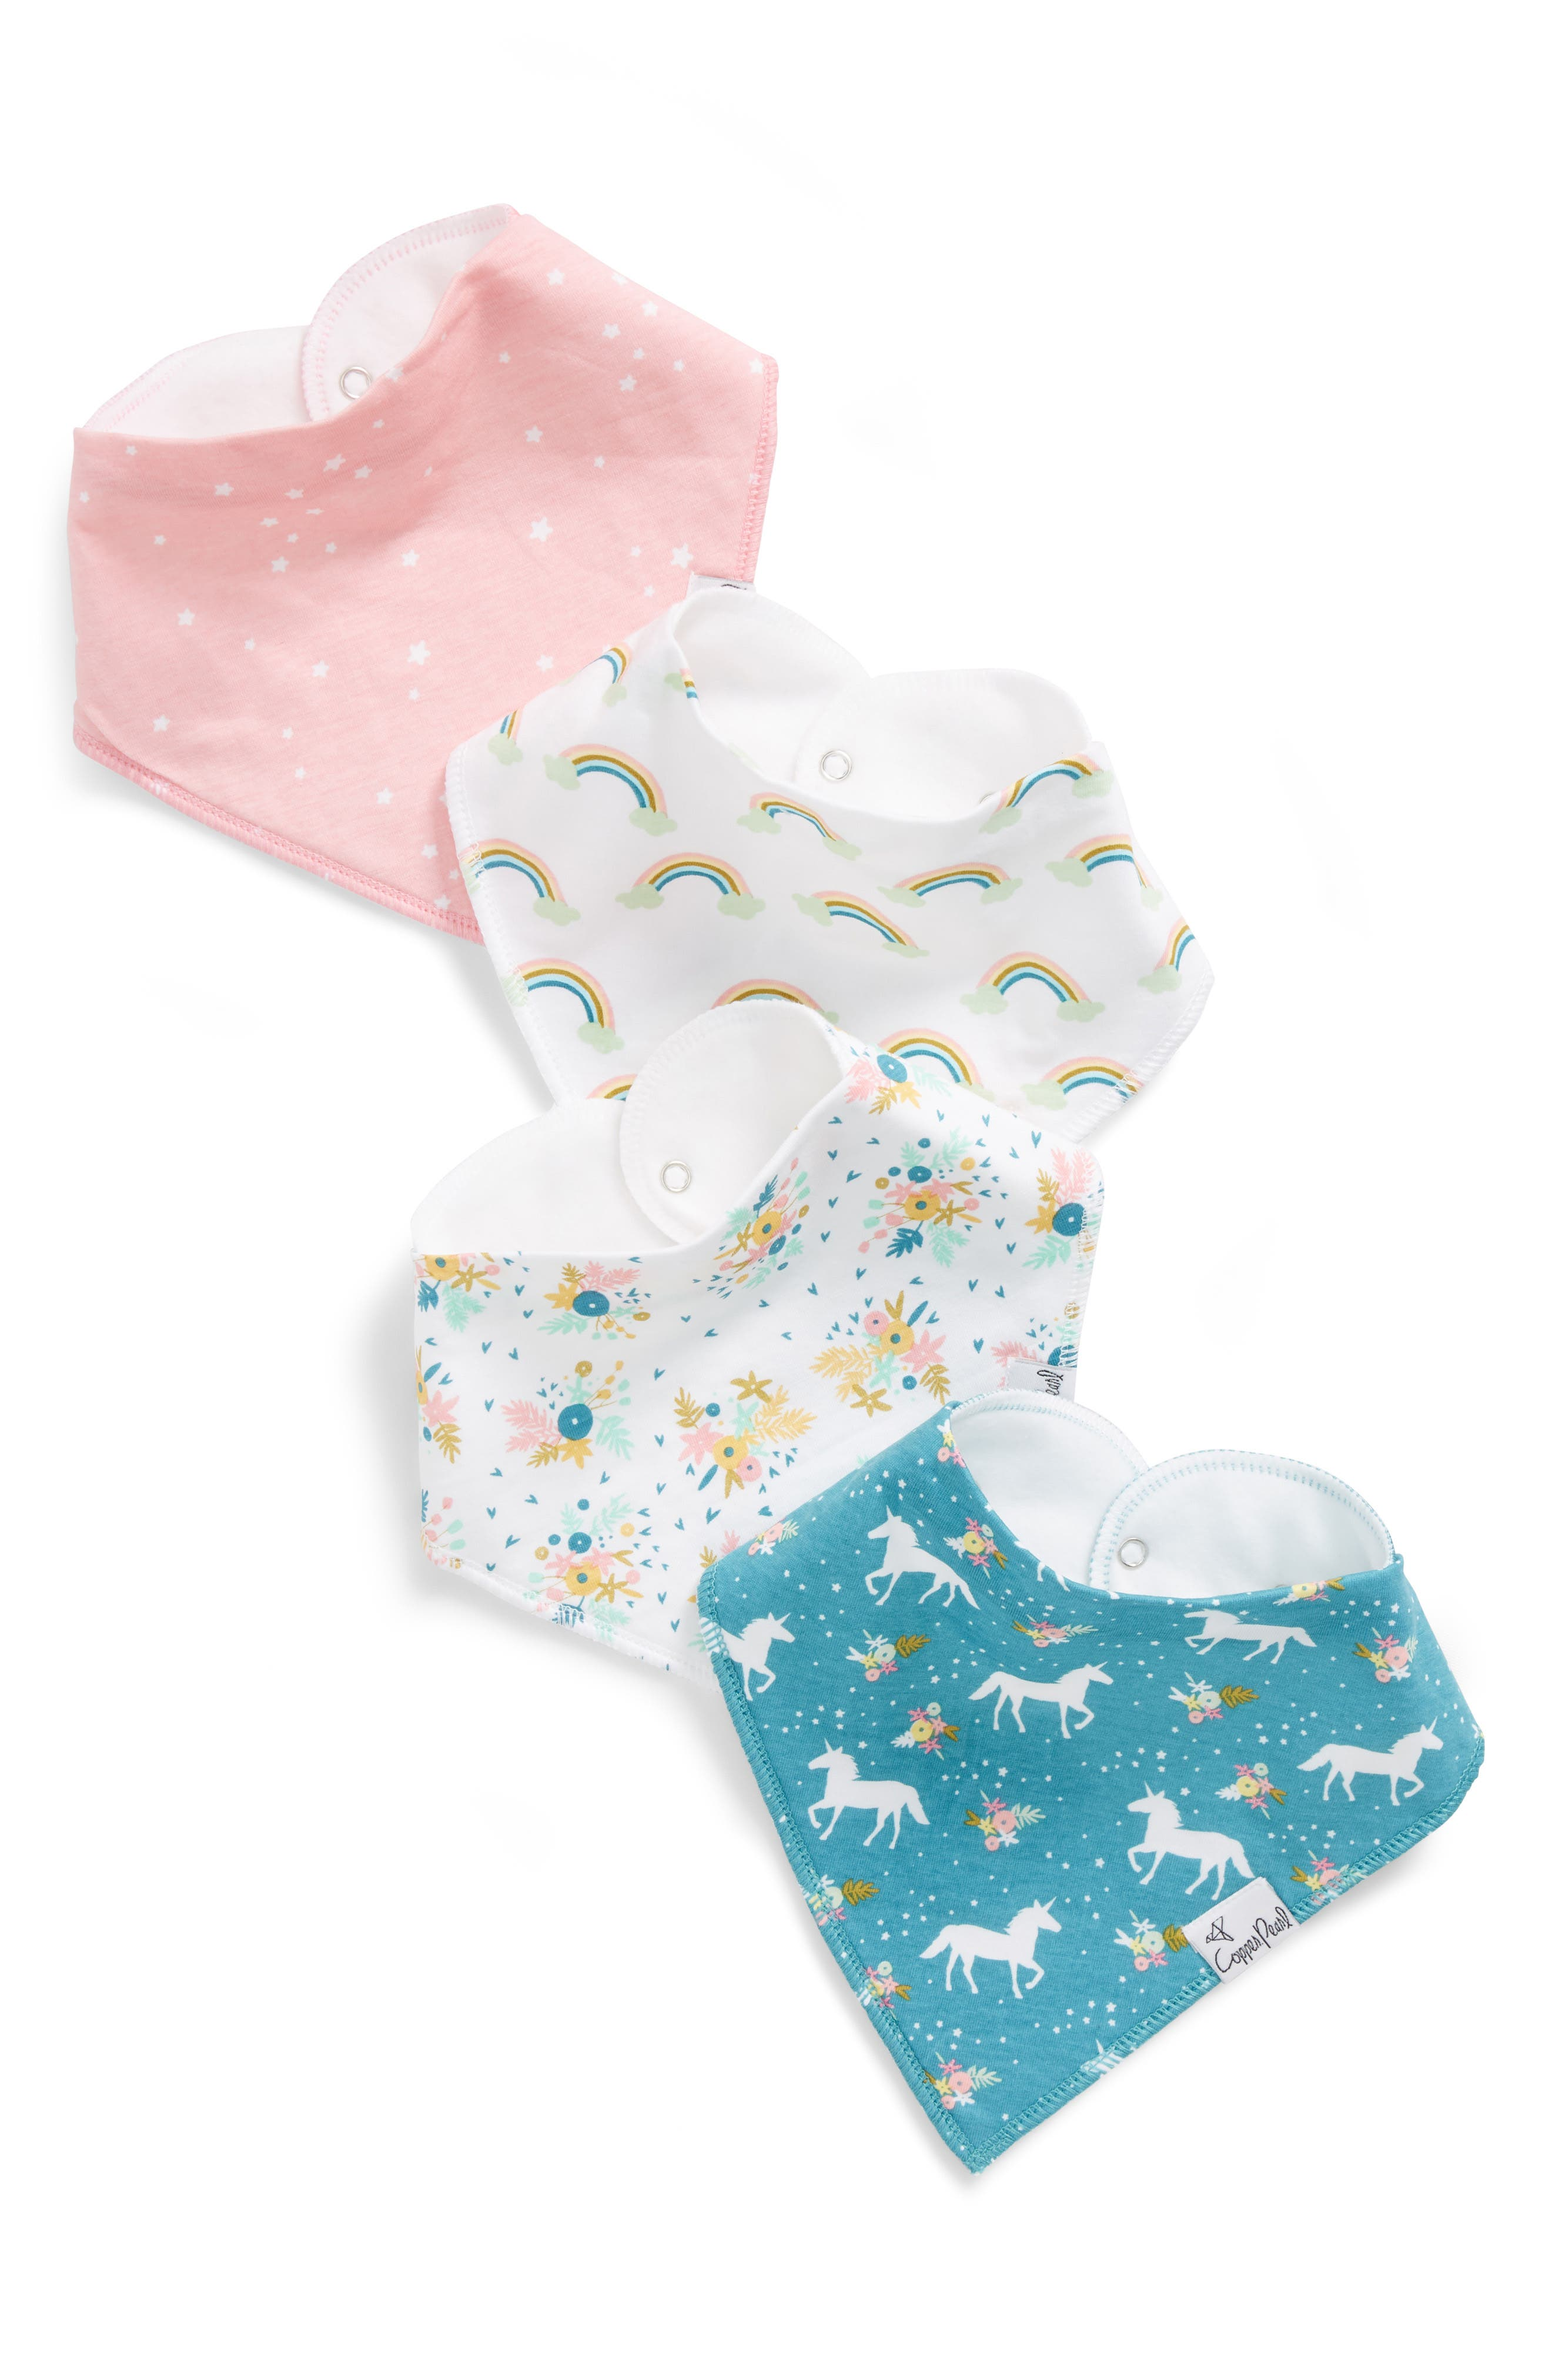 4-Pack Bandana Bibs,                             Main thumbnail 1, color,                             WHIMSY